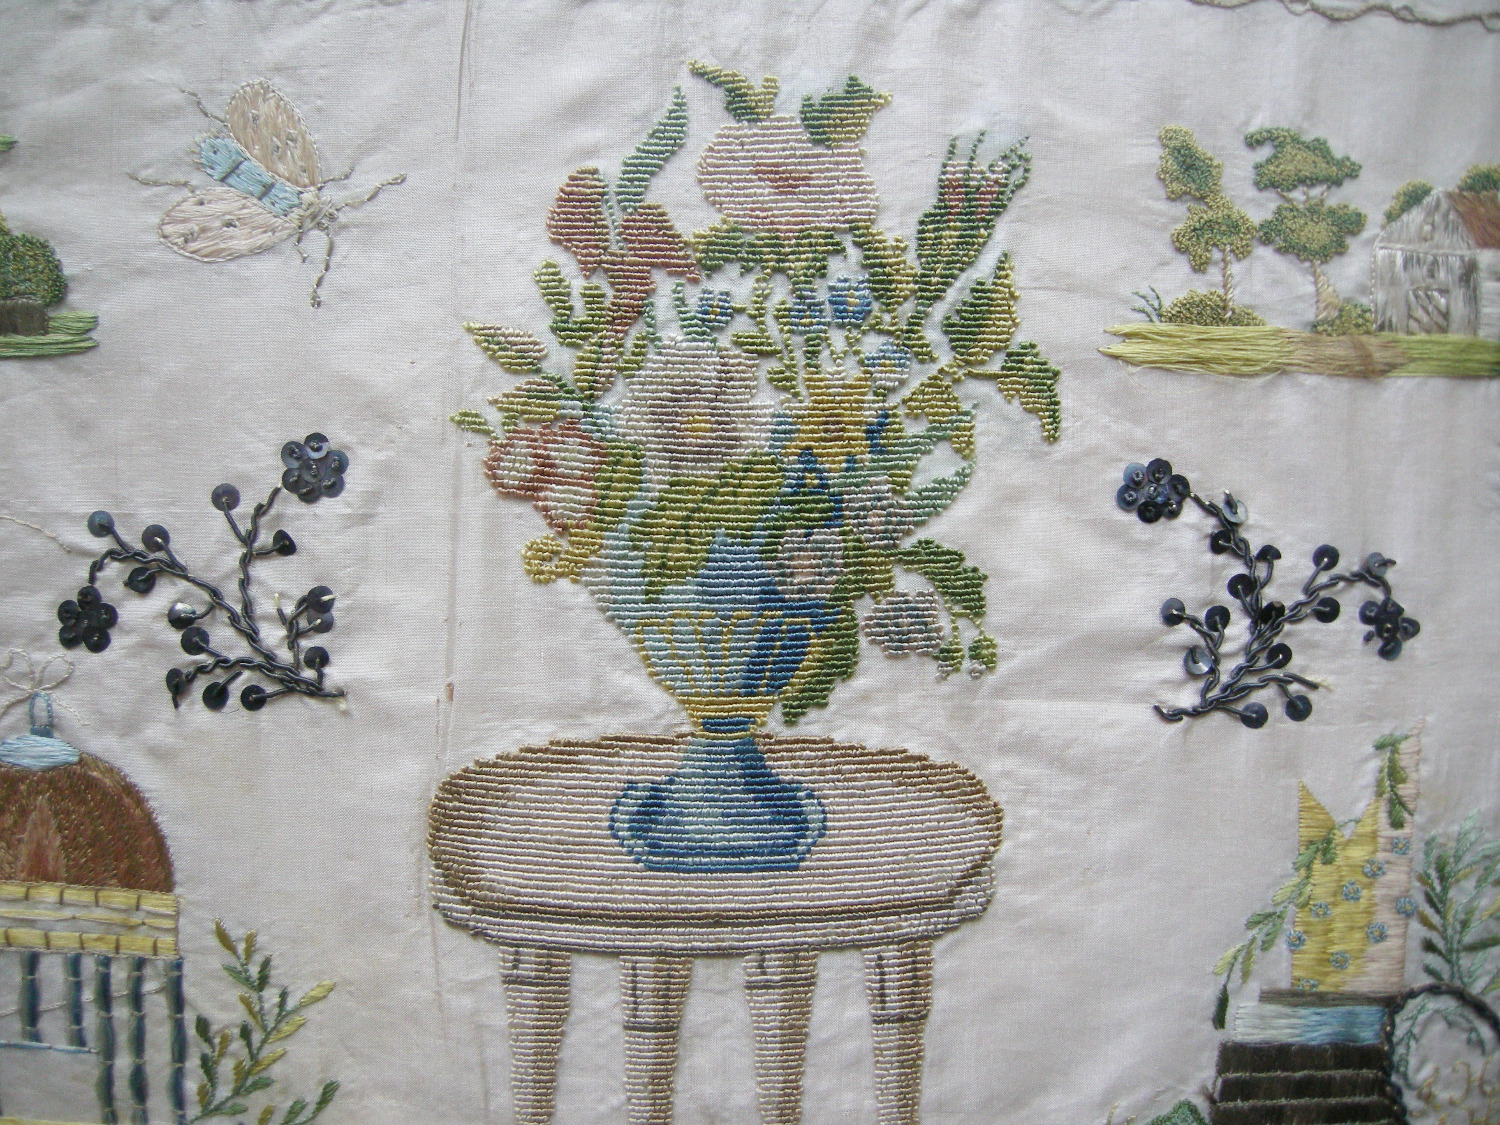 Detail 'Netto' sampler, circa 1800